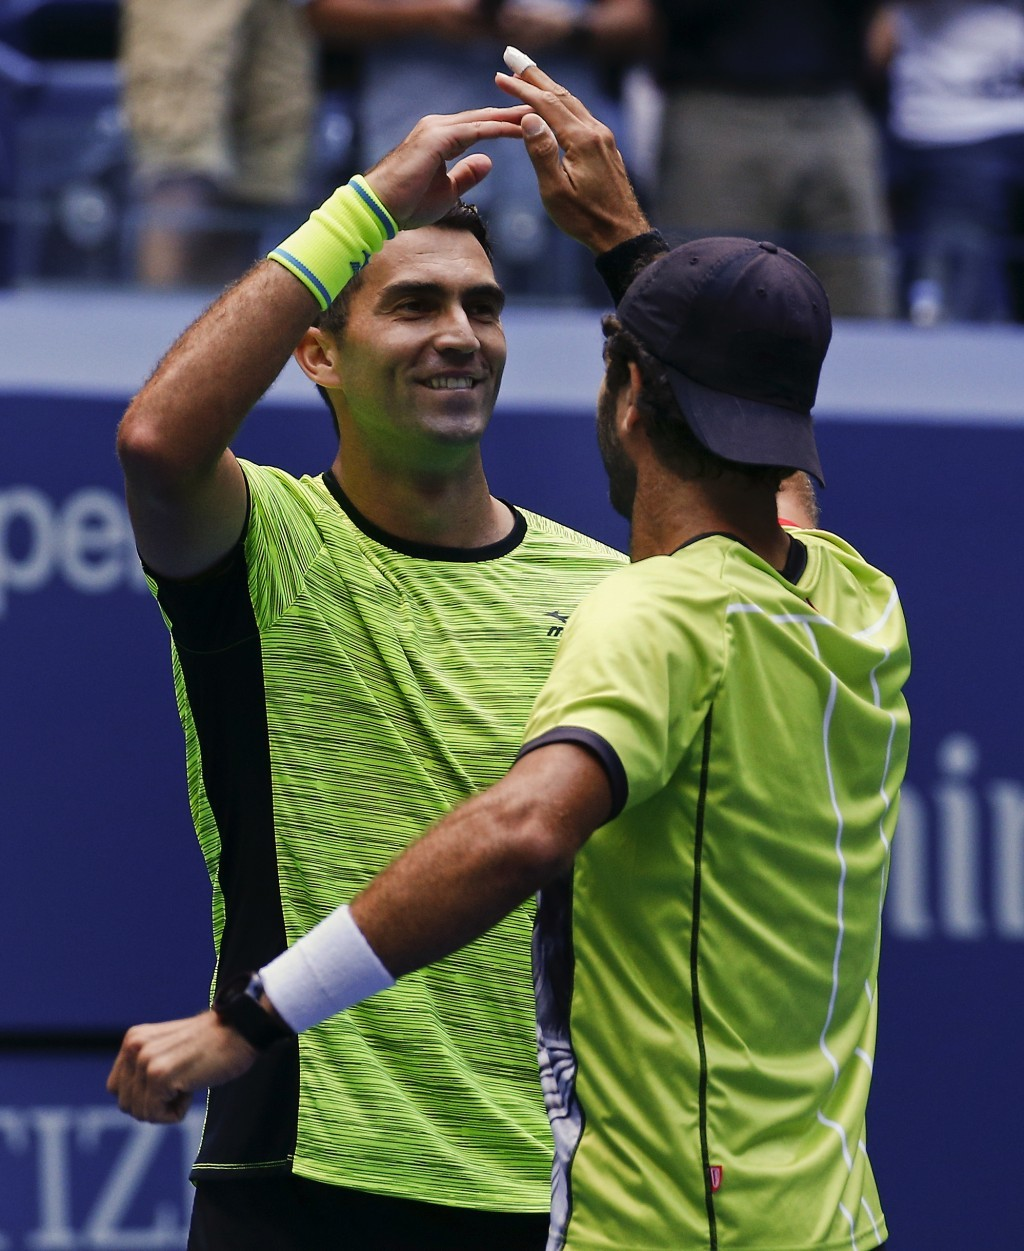 Horia Tecau, of Romania, left, and Jean-Julien Rojer, of Holland, celebrate after beating Feliciano Lopez, of Spain, and Marc Lopez in the doubles fin...